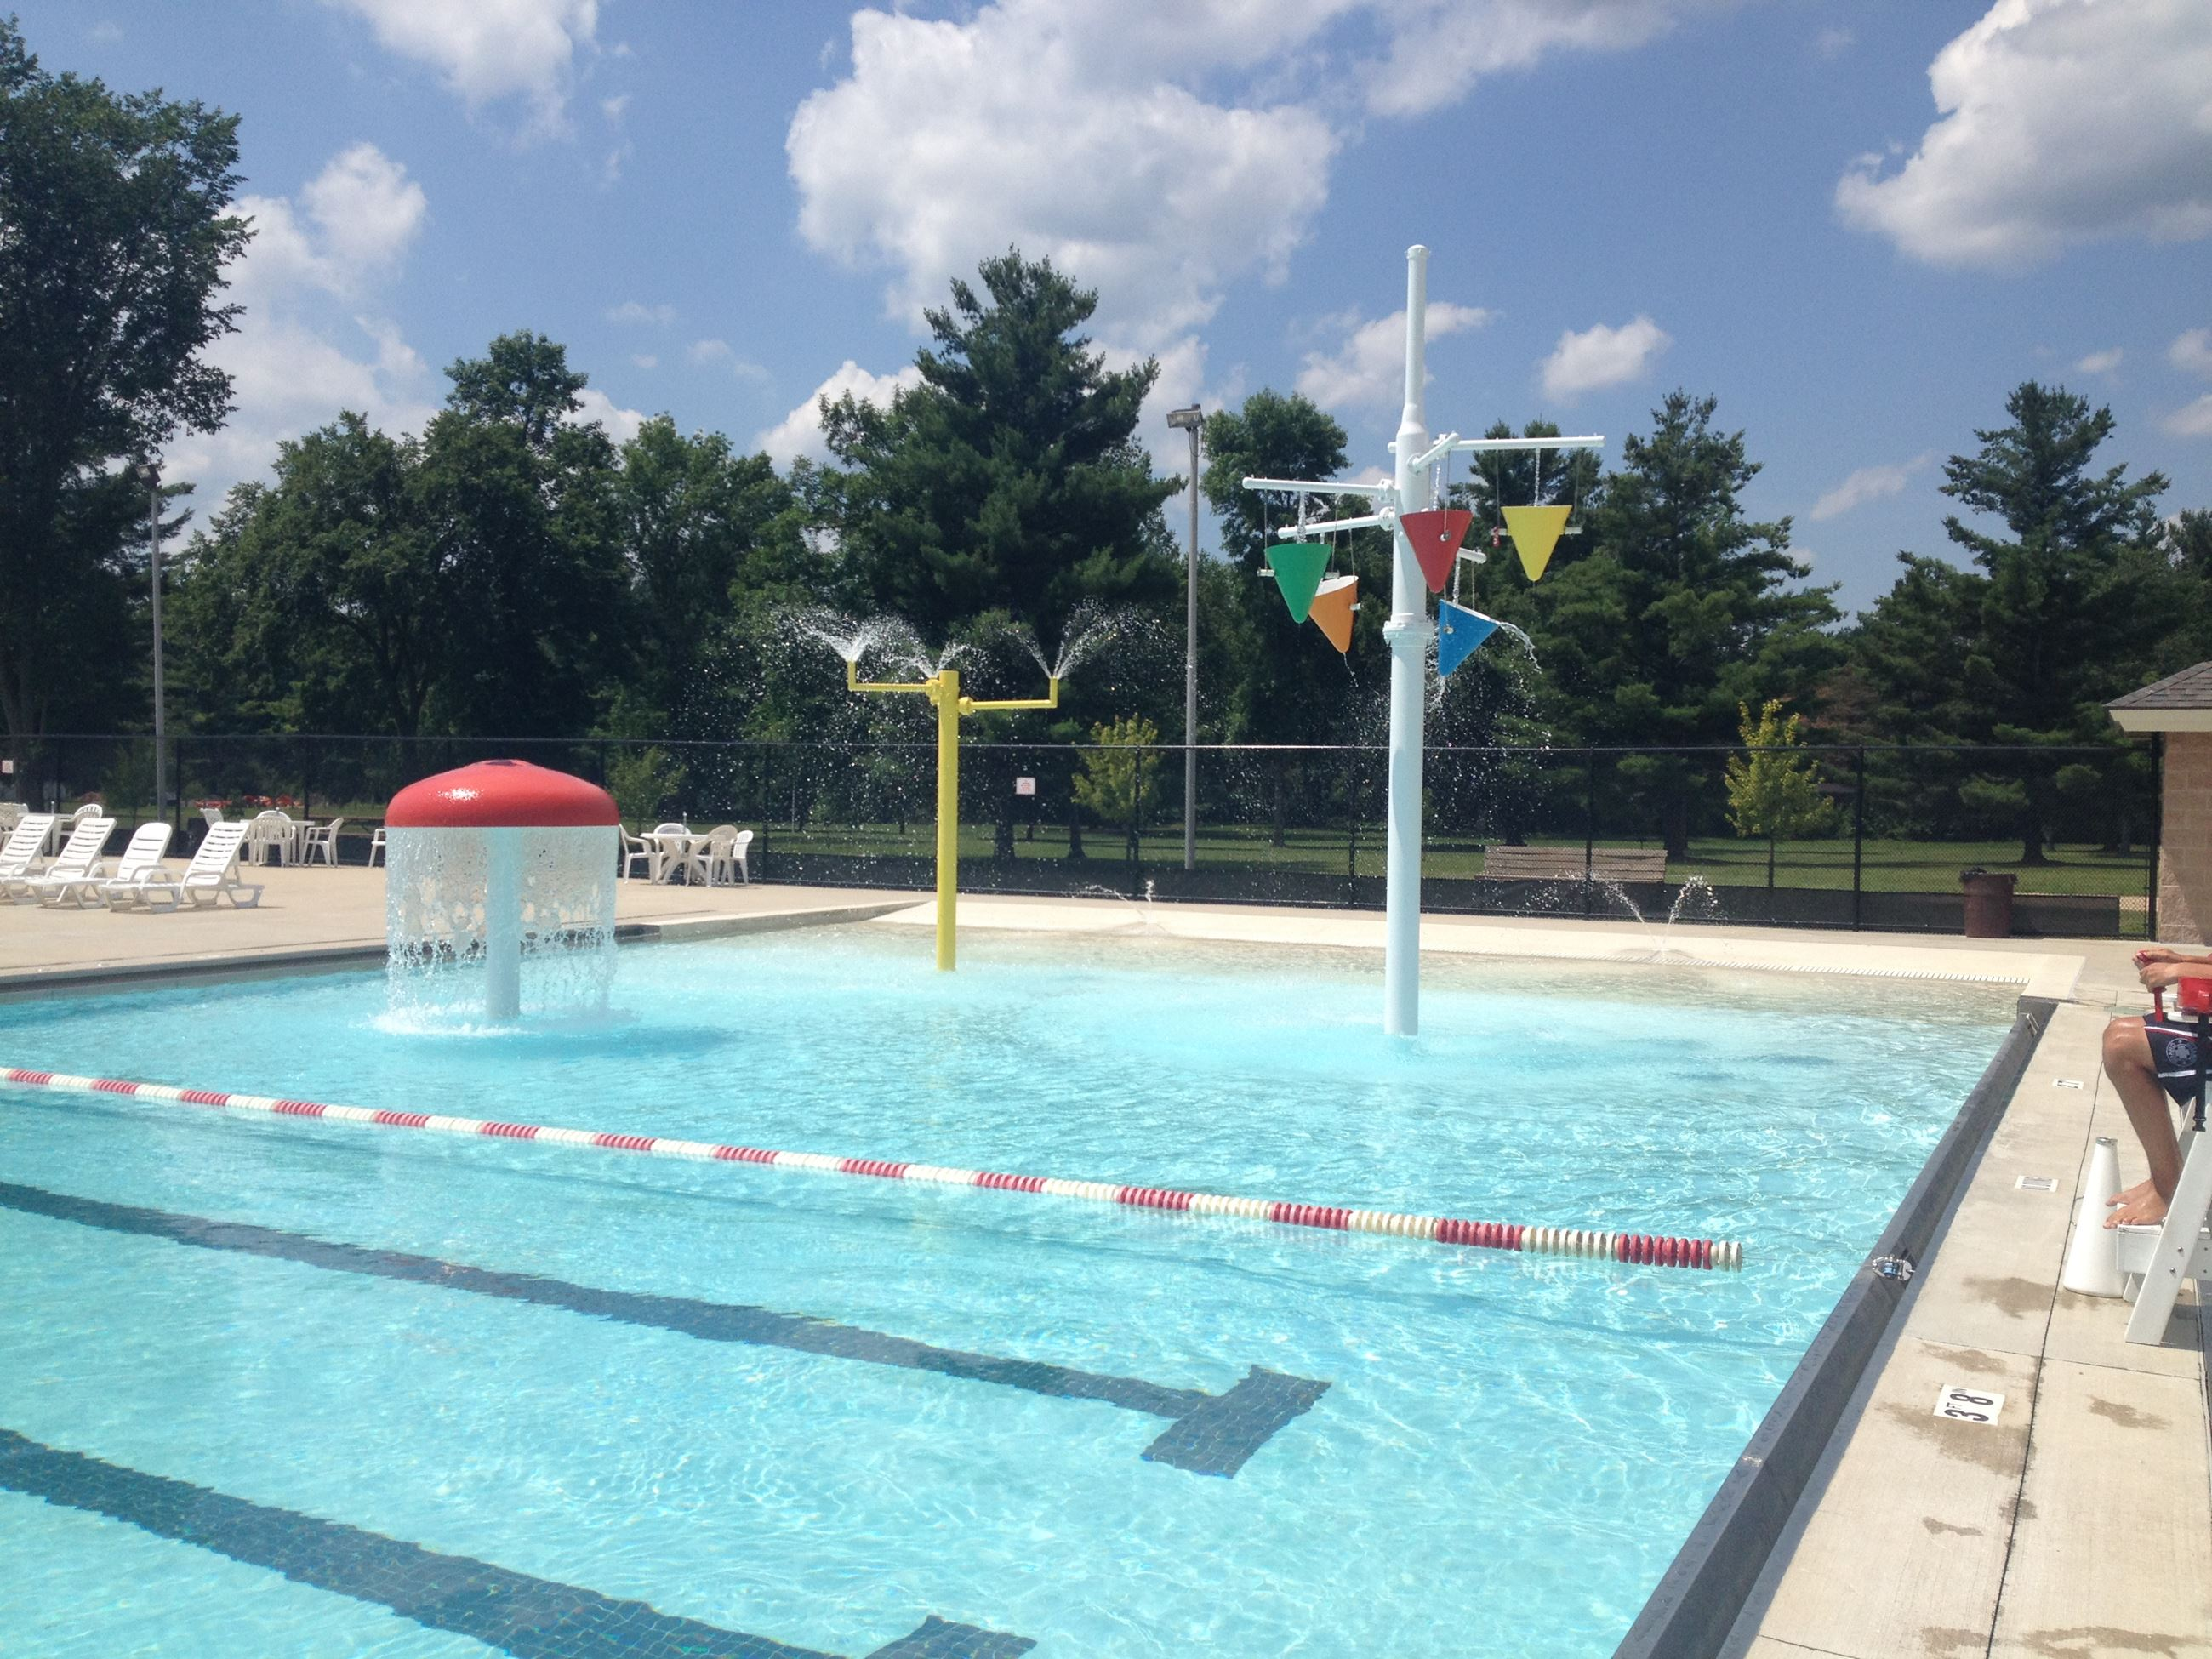 Plymouth Park Pool Midland Mi Official Website